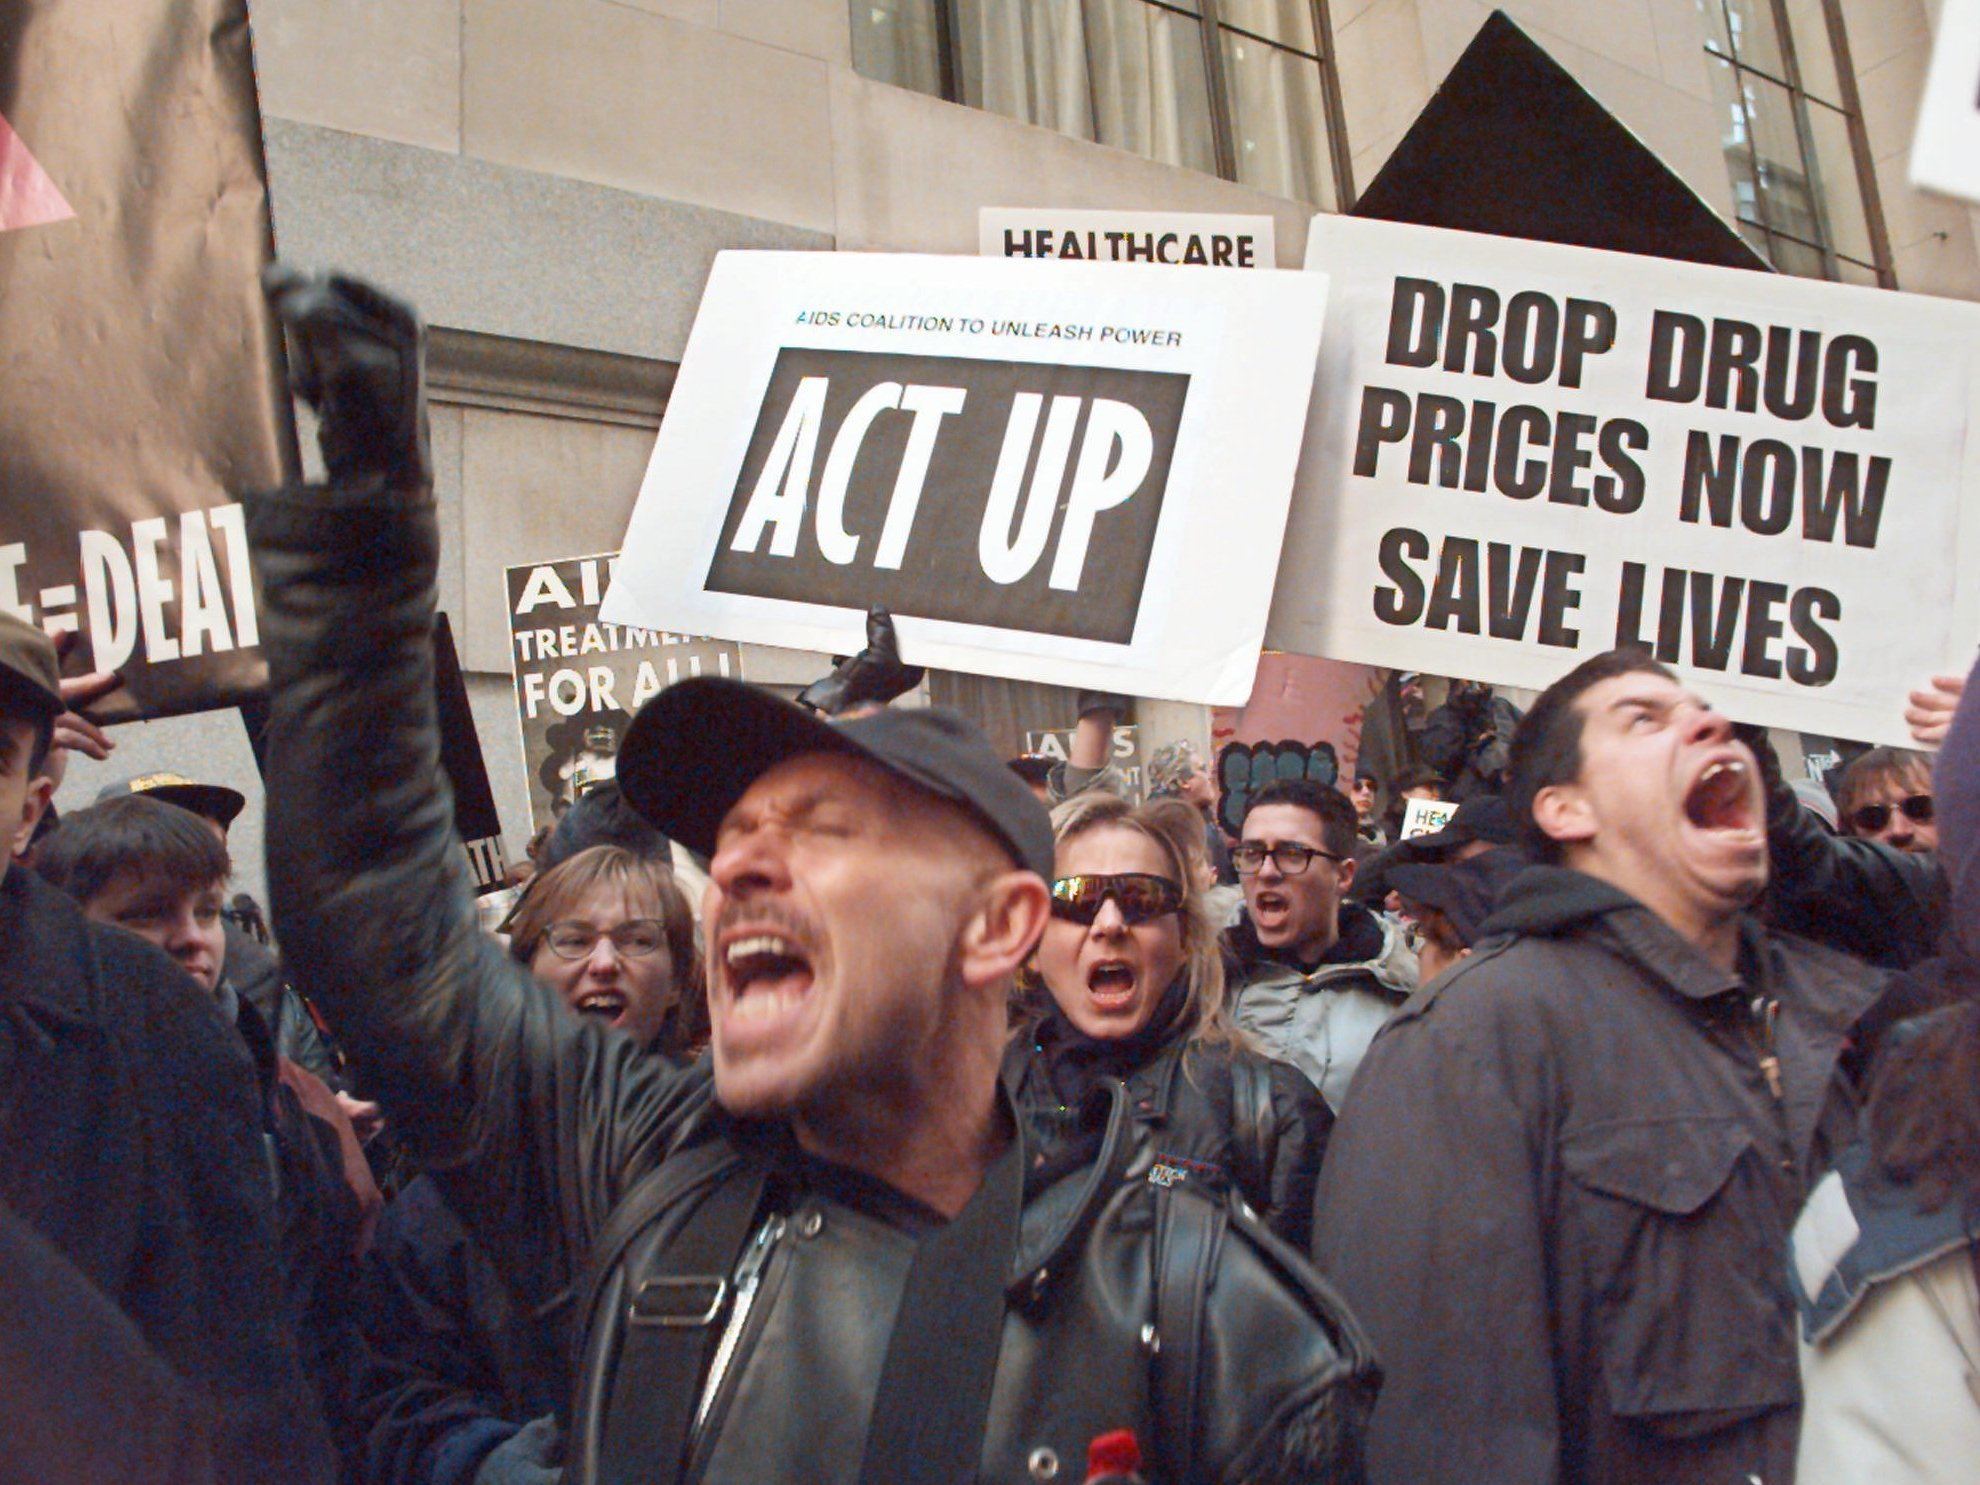 Protesters marked the 10th anniversary of the forming of ACT UP along Wall Street in New York City in 1997 by calling attention to the high price of AIDS drugs. (Mark Lennihan/AP)